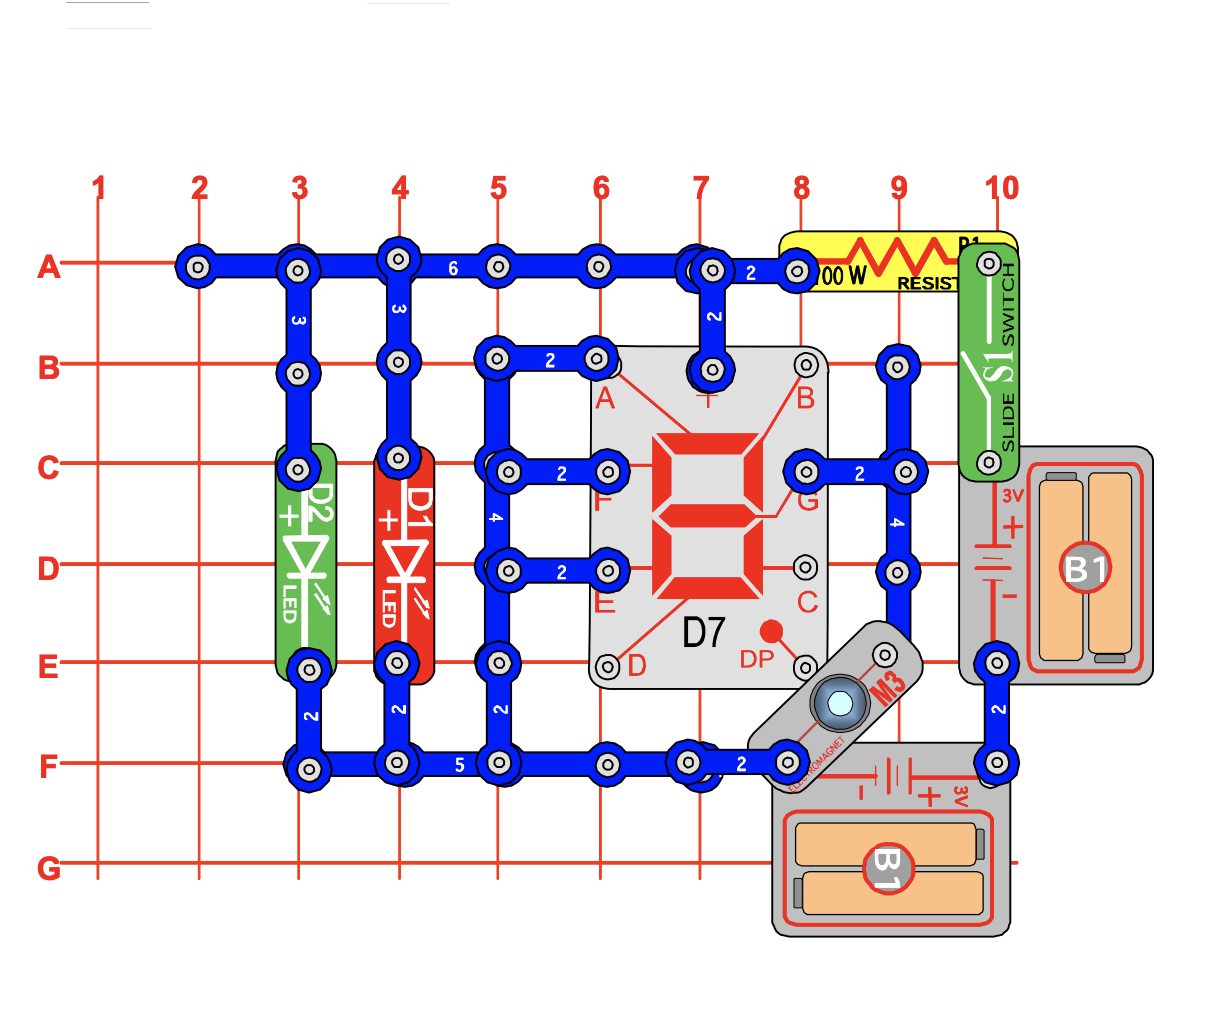 snap circuits design with switch